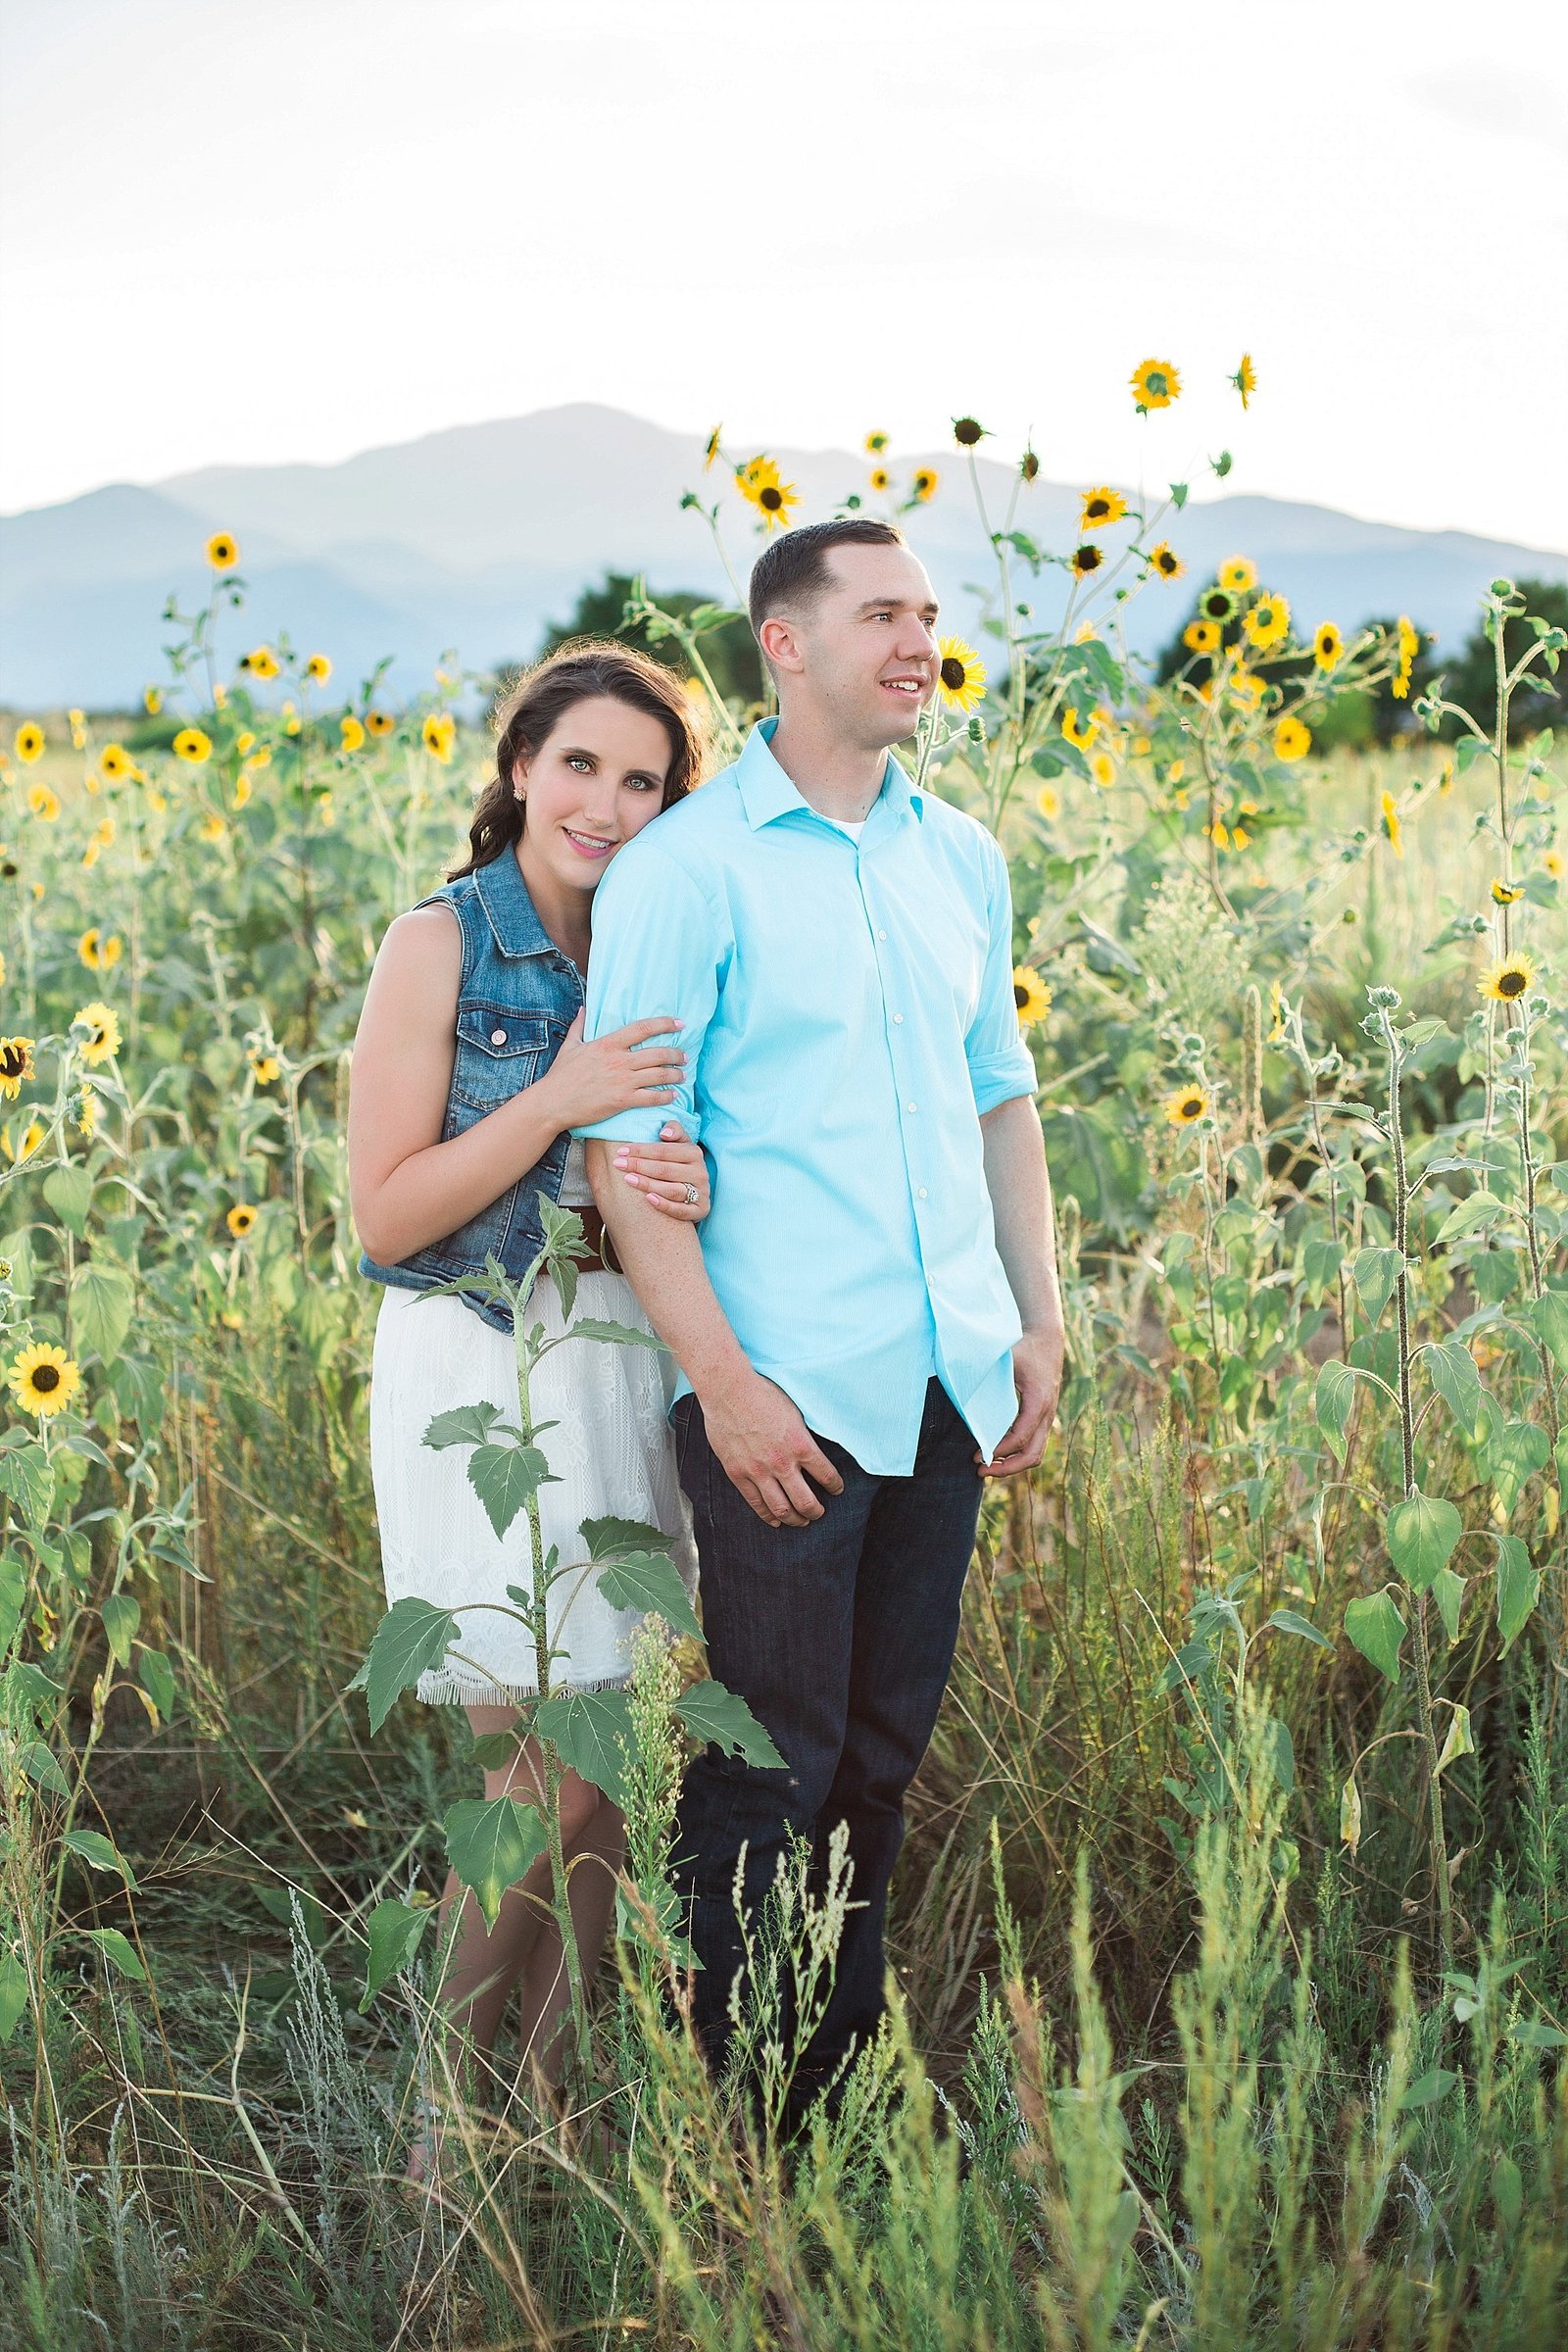 Genevieve Hansen Photography Engagement Photos Portraits Engagements Colorado Springs Engagement Photographer Wedding Photos Pictures CO Denver (11)